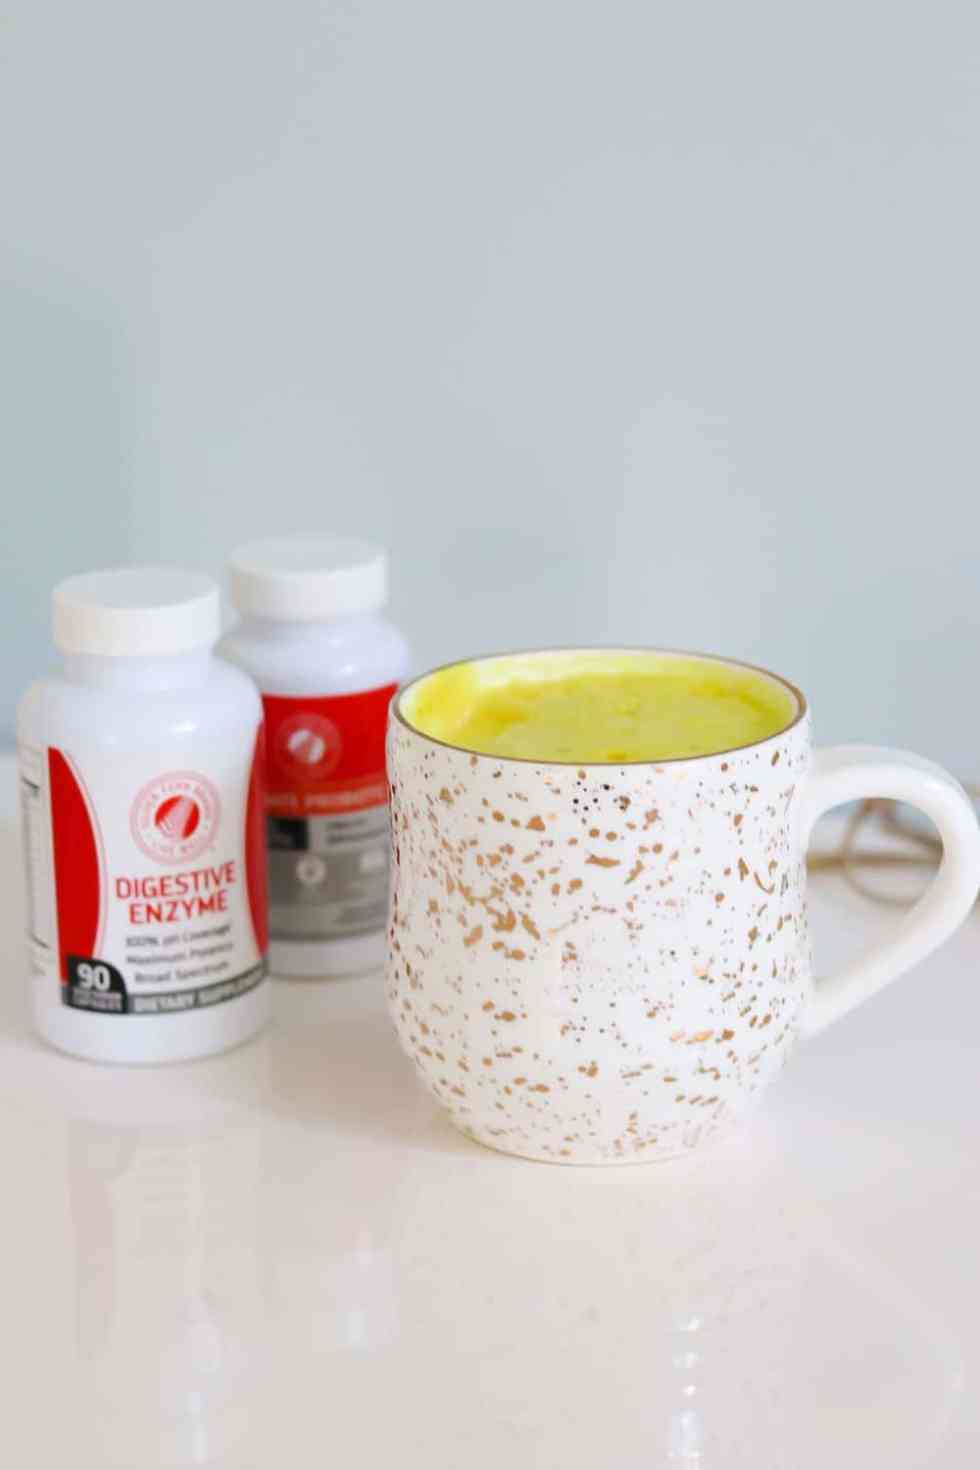 Digestive enzymes and a gold speckled mug. Helps to heal the gut naturally.